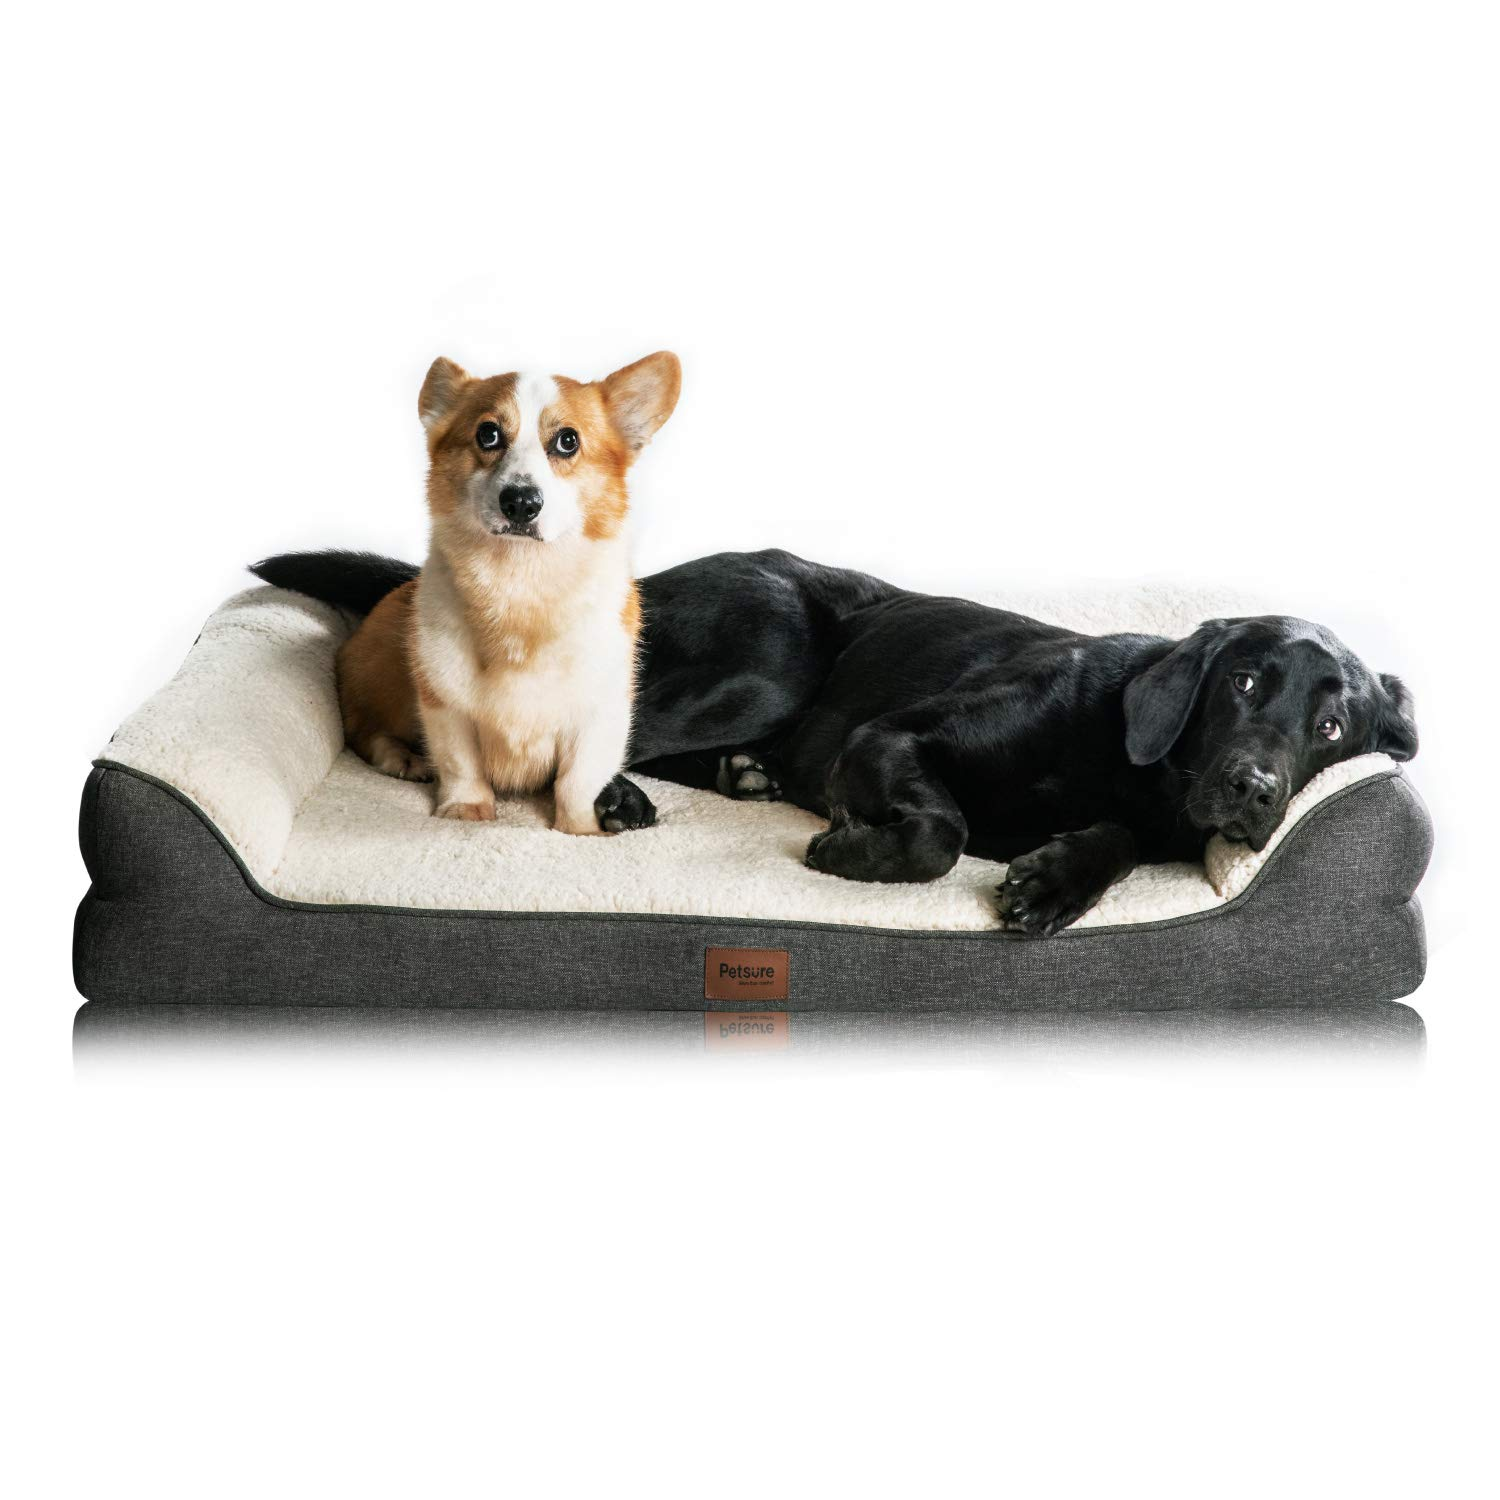 Astounding Bedsure Orthopedic Dog Beds Extra Large Memory Foam Couch Dog Sofa With Removable Washable Cover Nonskid Bottom 106X81X18Cm Home Interior And Landscaping Palasignezvosmurscom